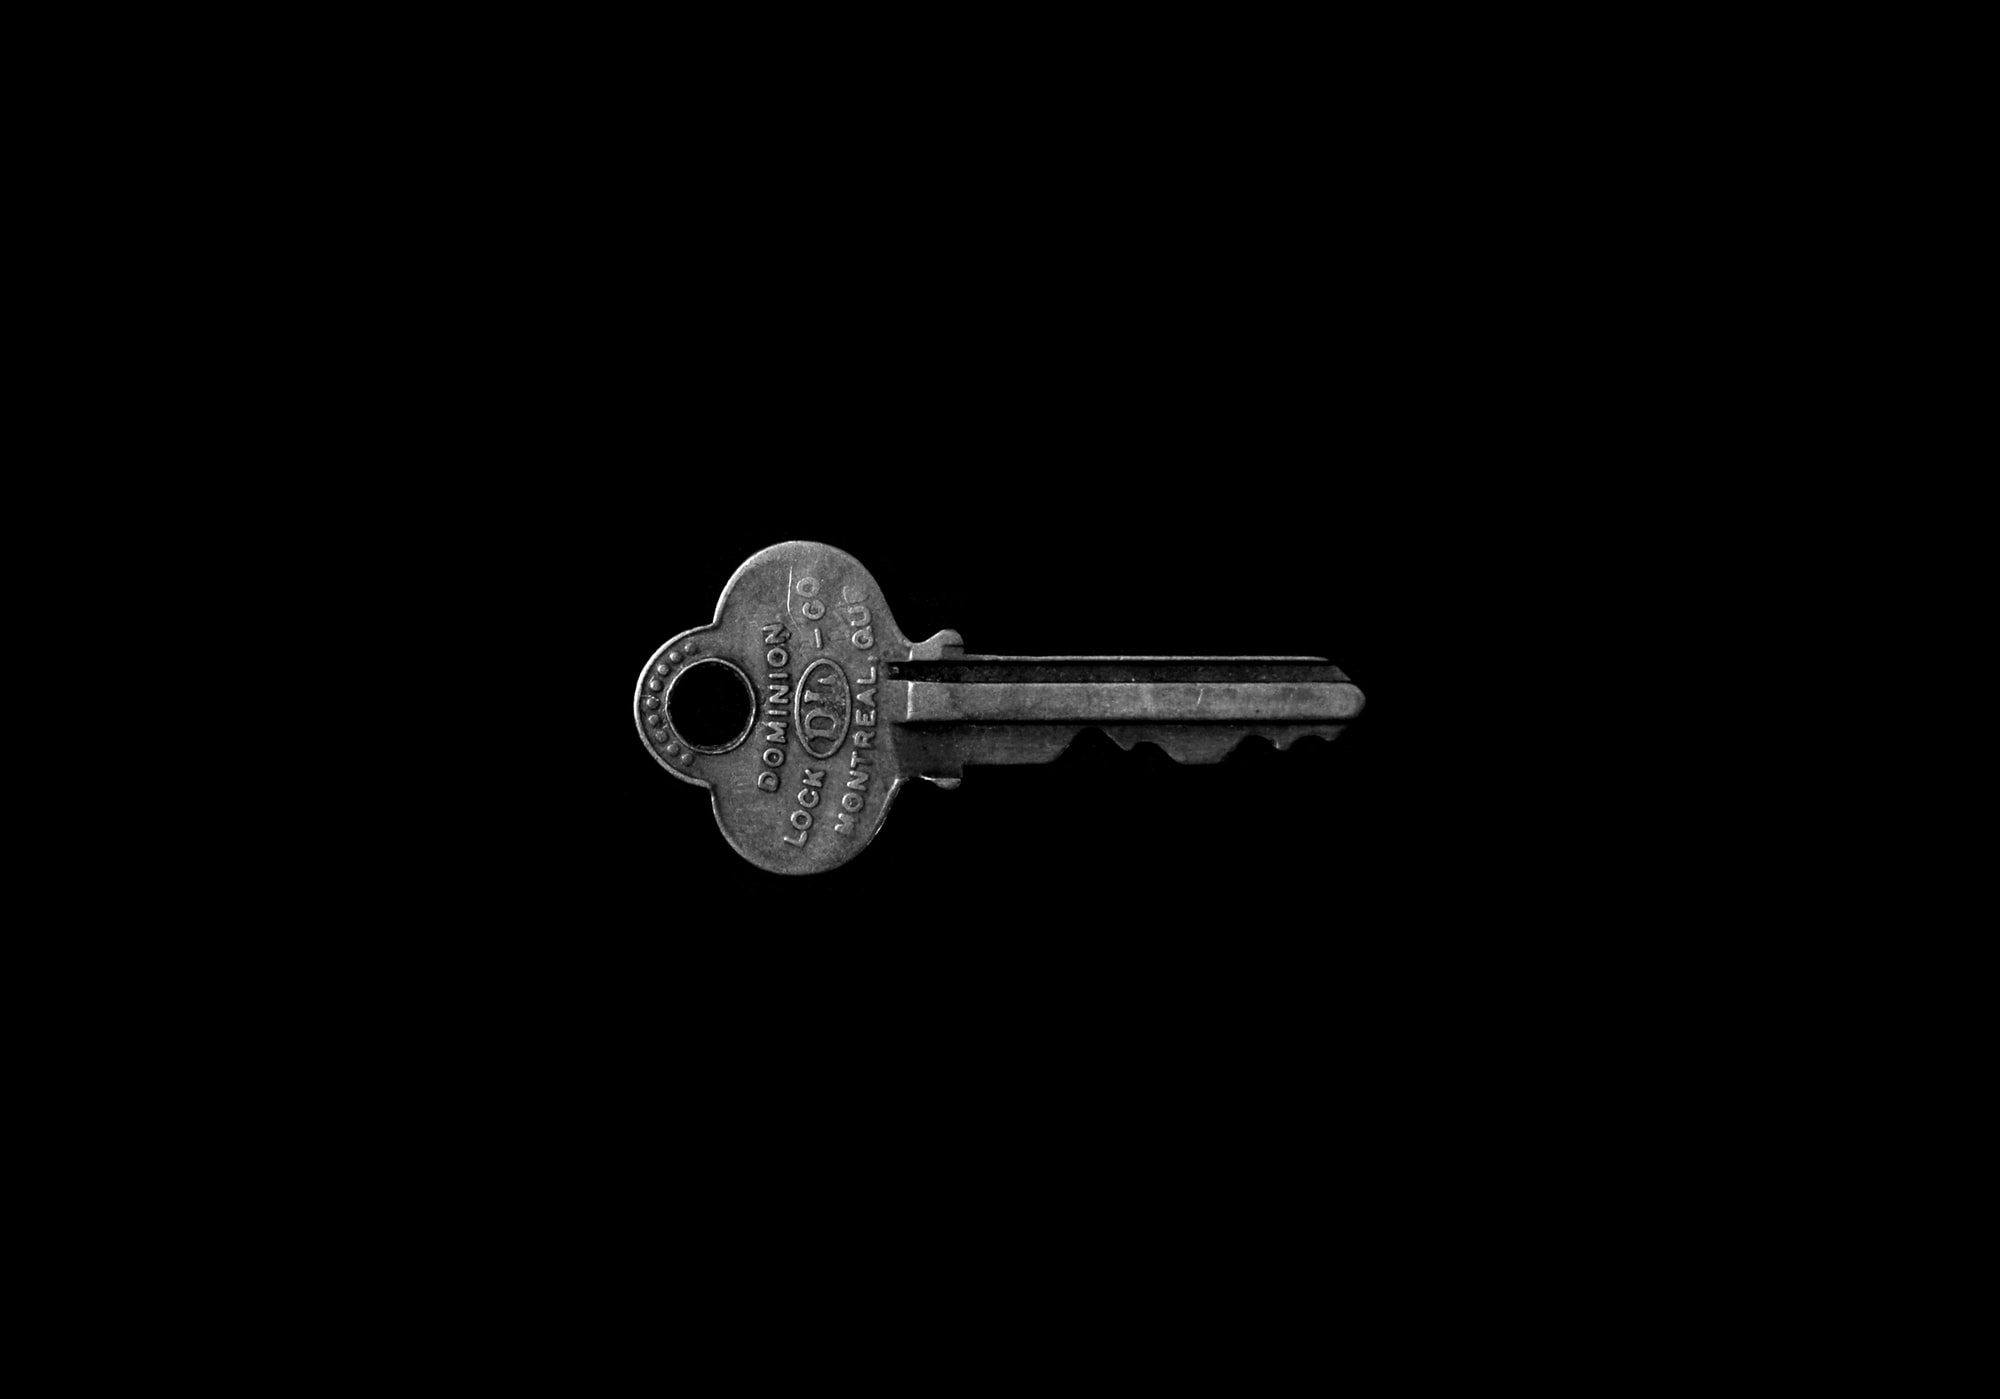 A Shallow Dive into Private-Key Encryptions